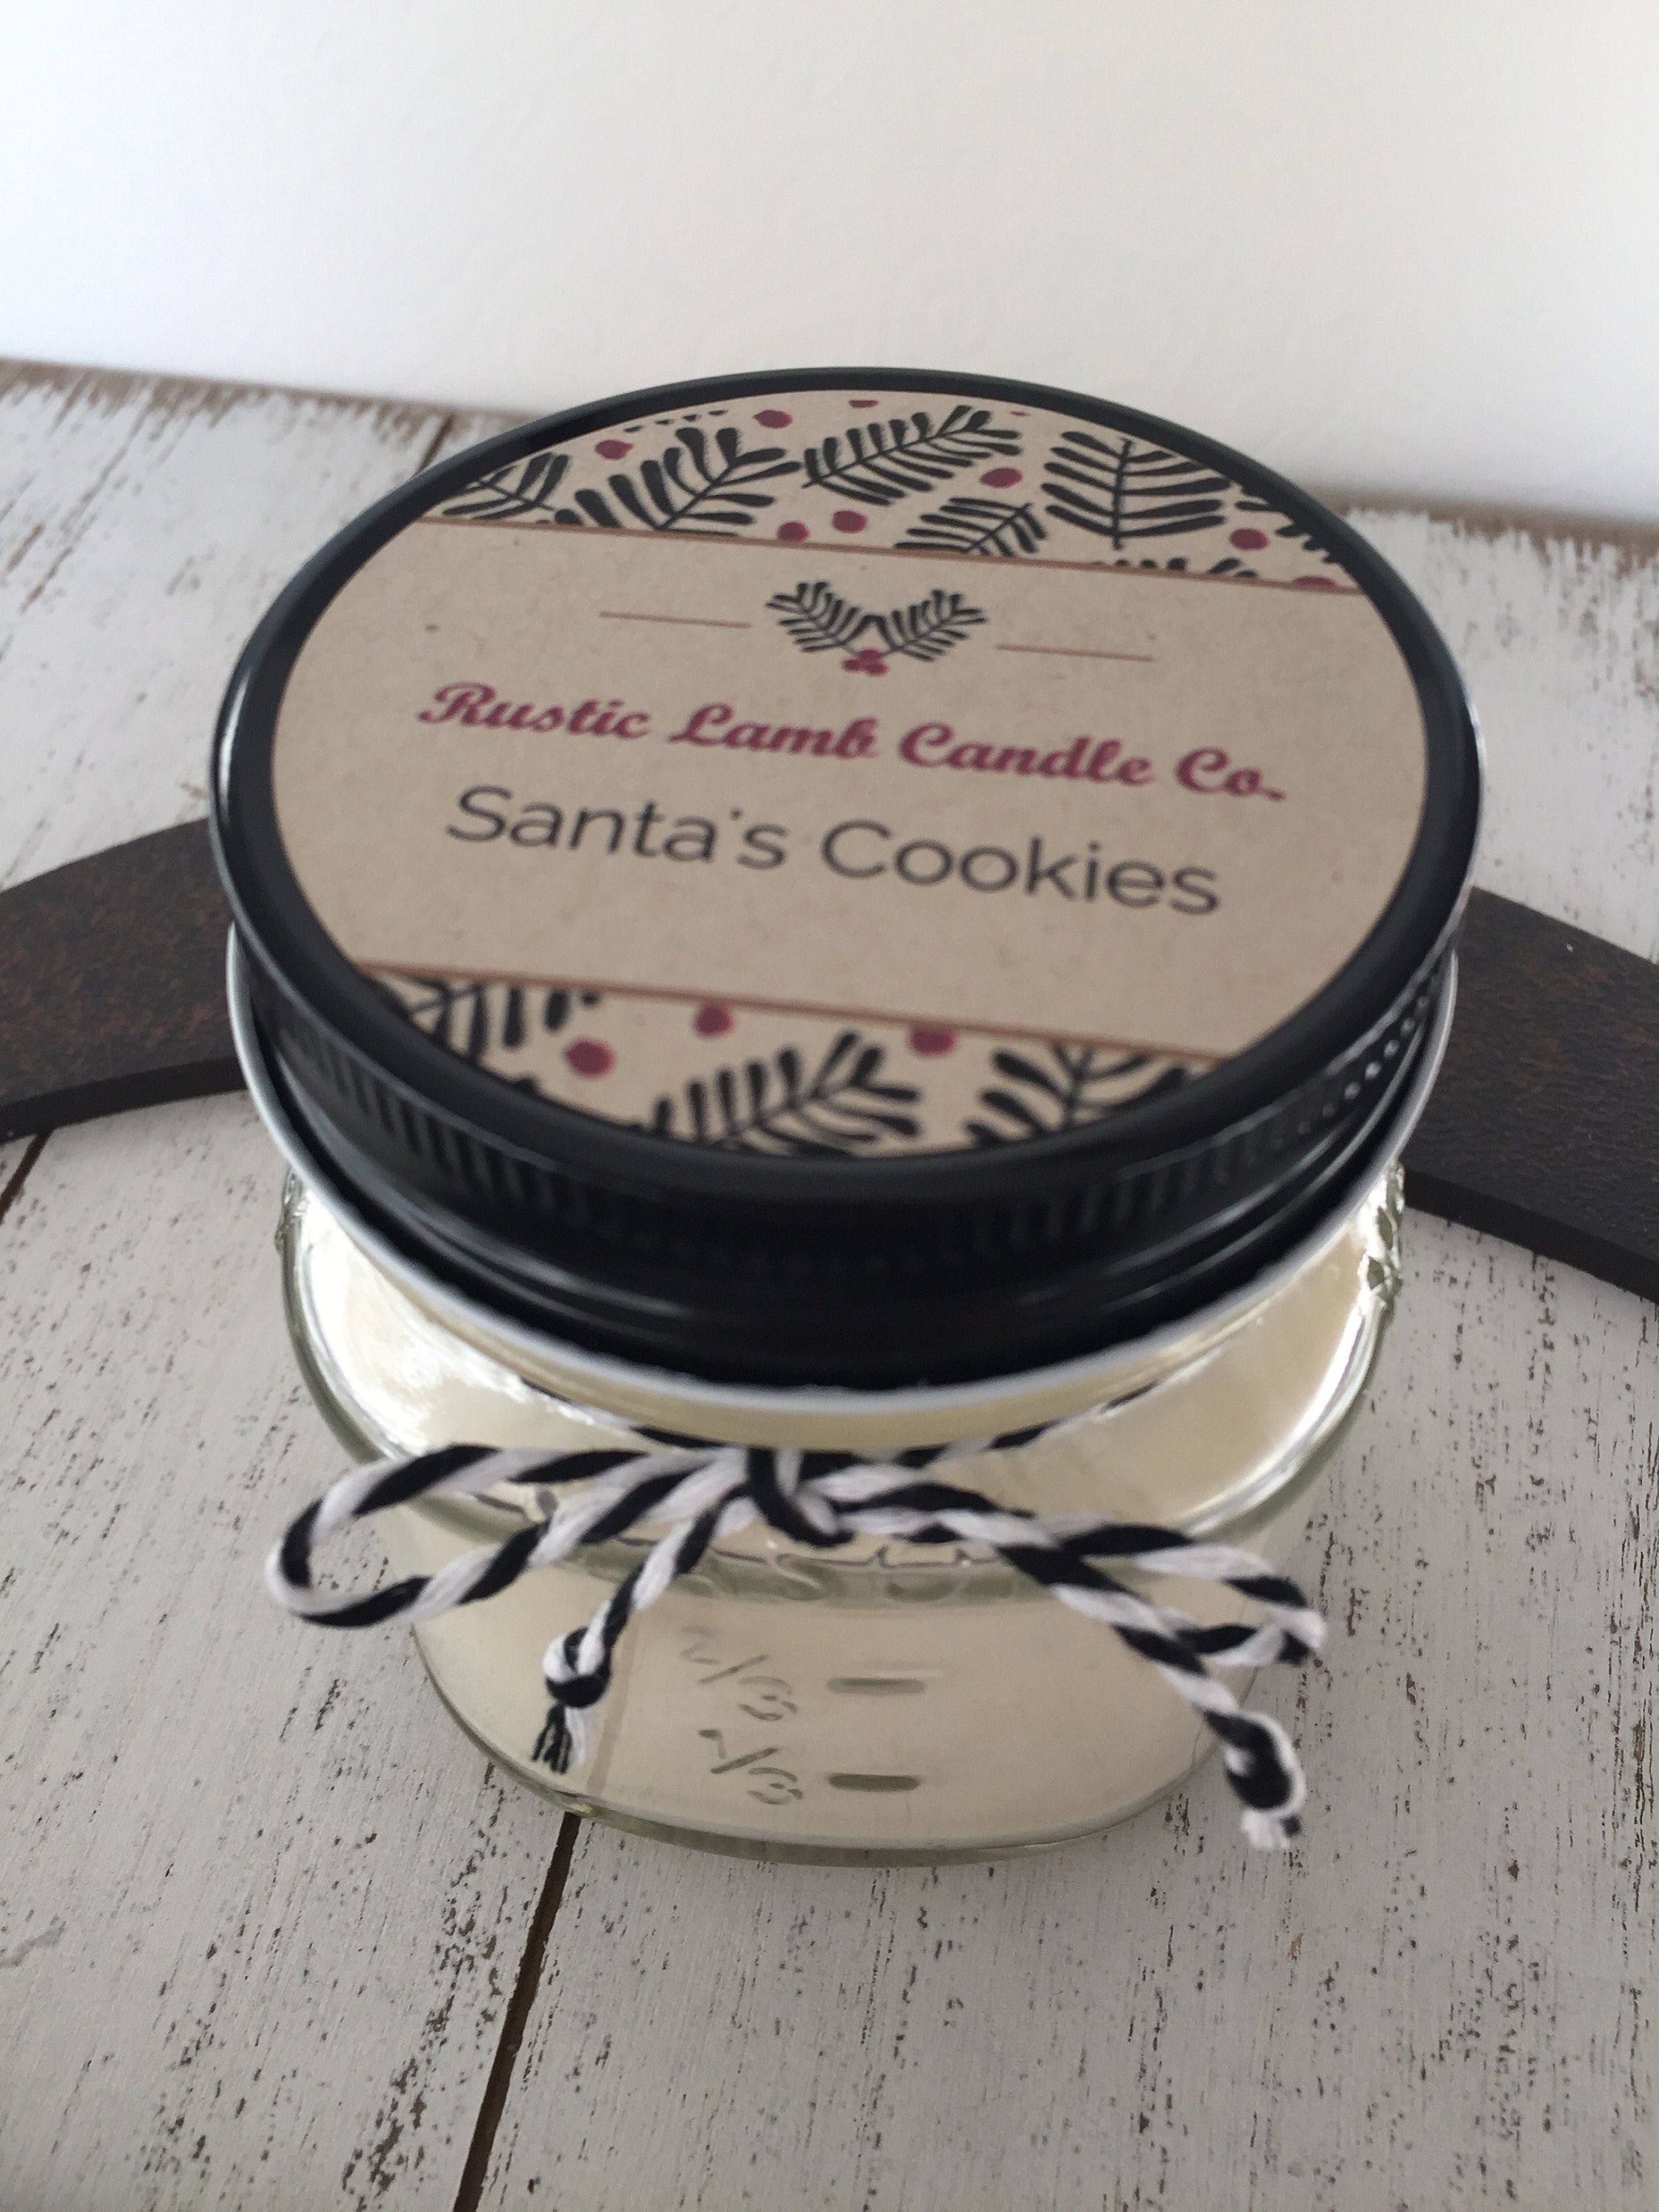 Santa S Cookies Sugar Cookie Scent Hand Poured Soy Candle Christmas Gift Holiday Scent Christmas Candles Santa Cookies Christmas Scents